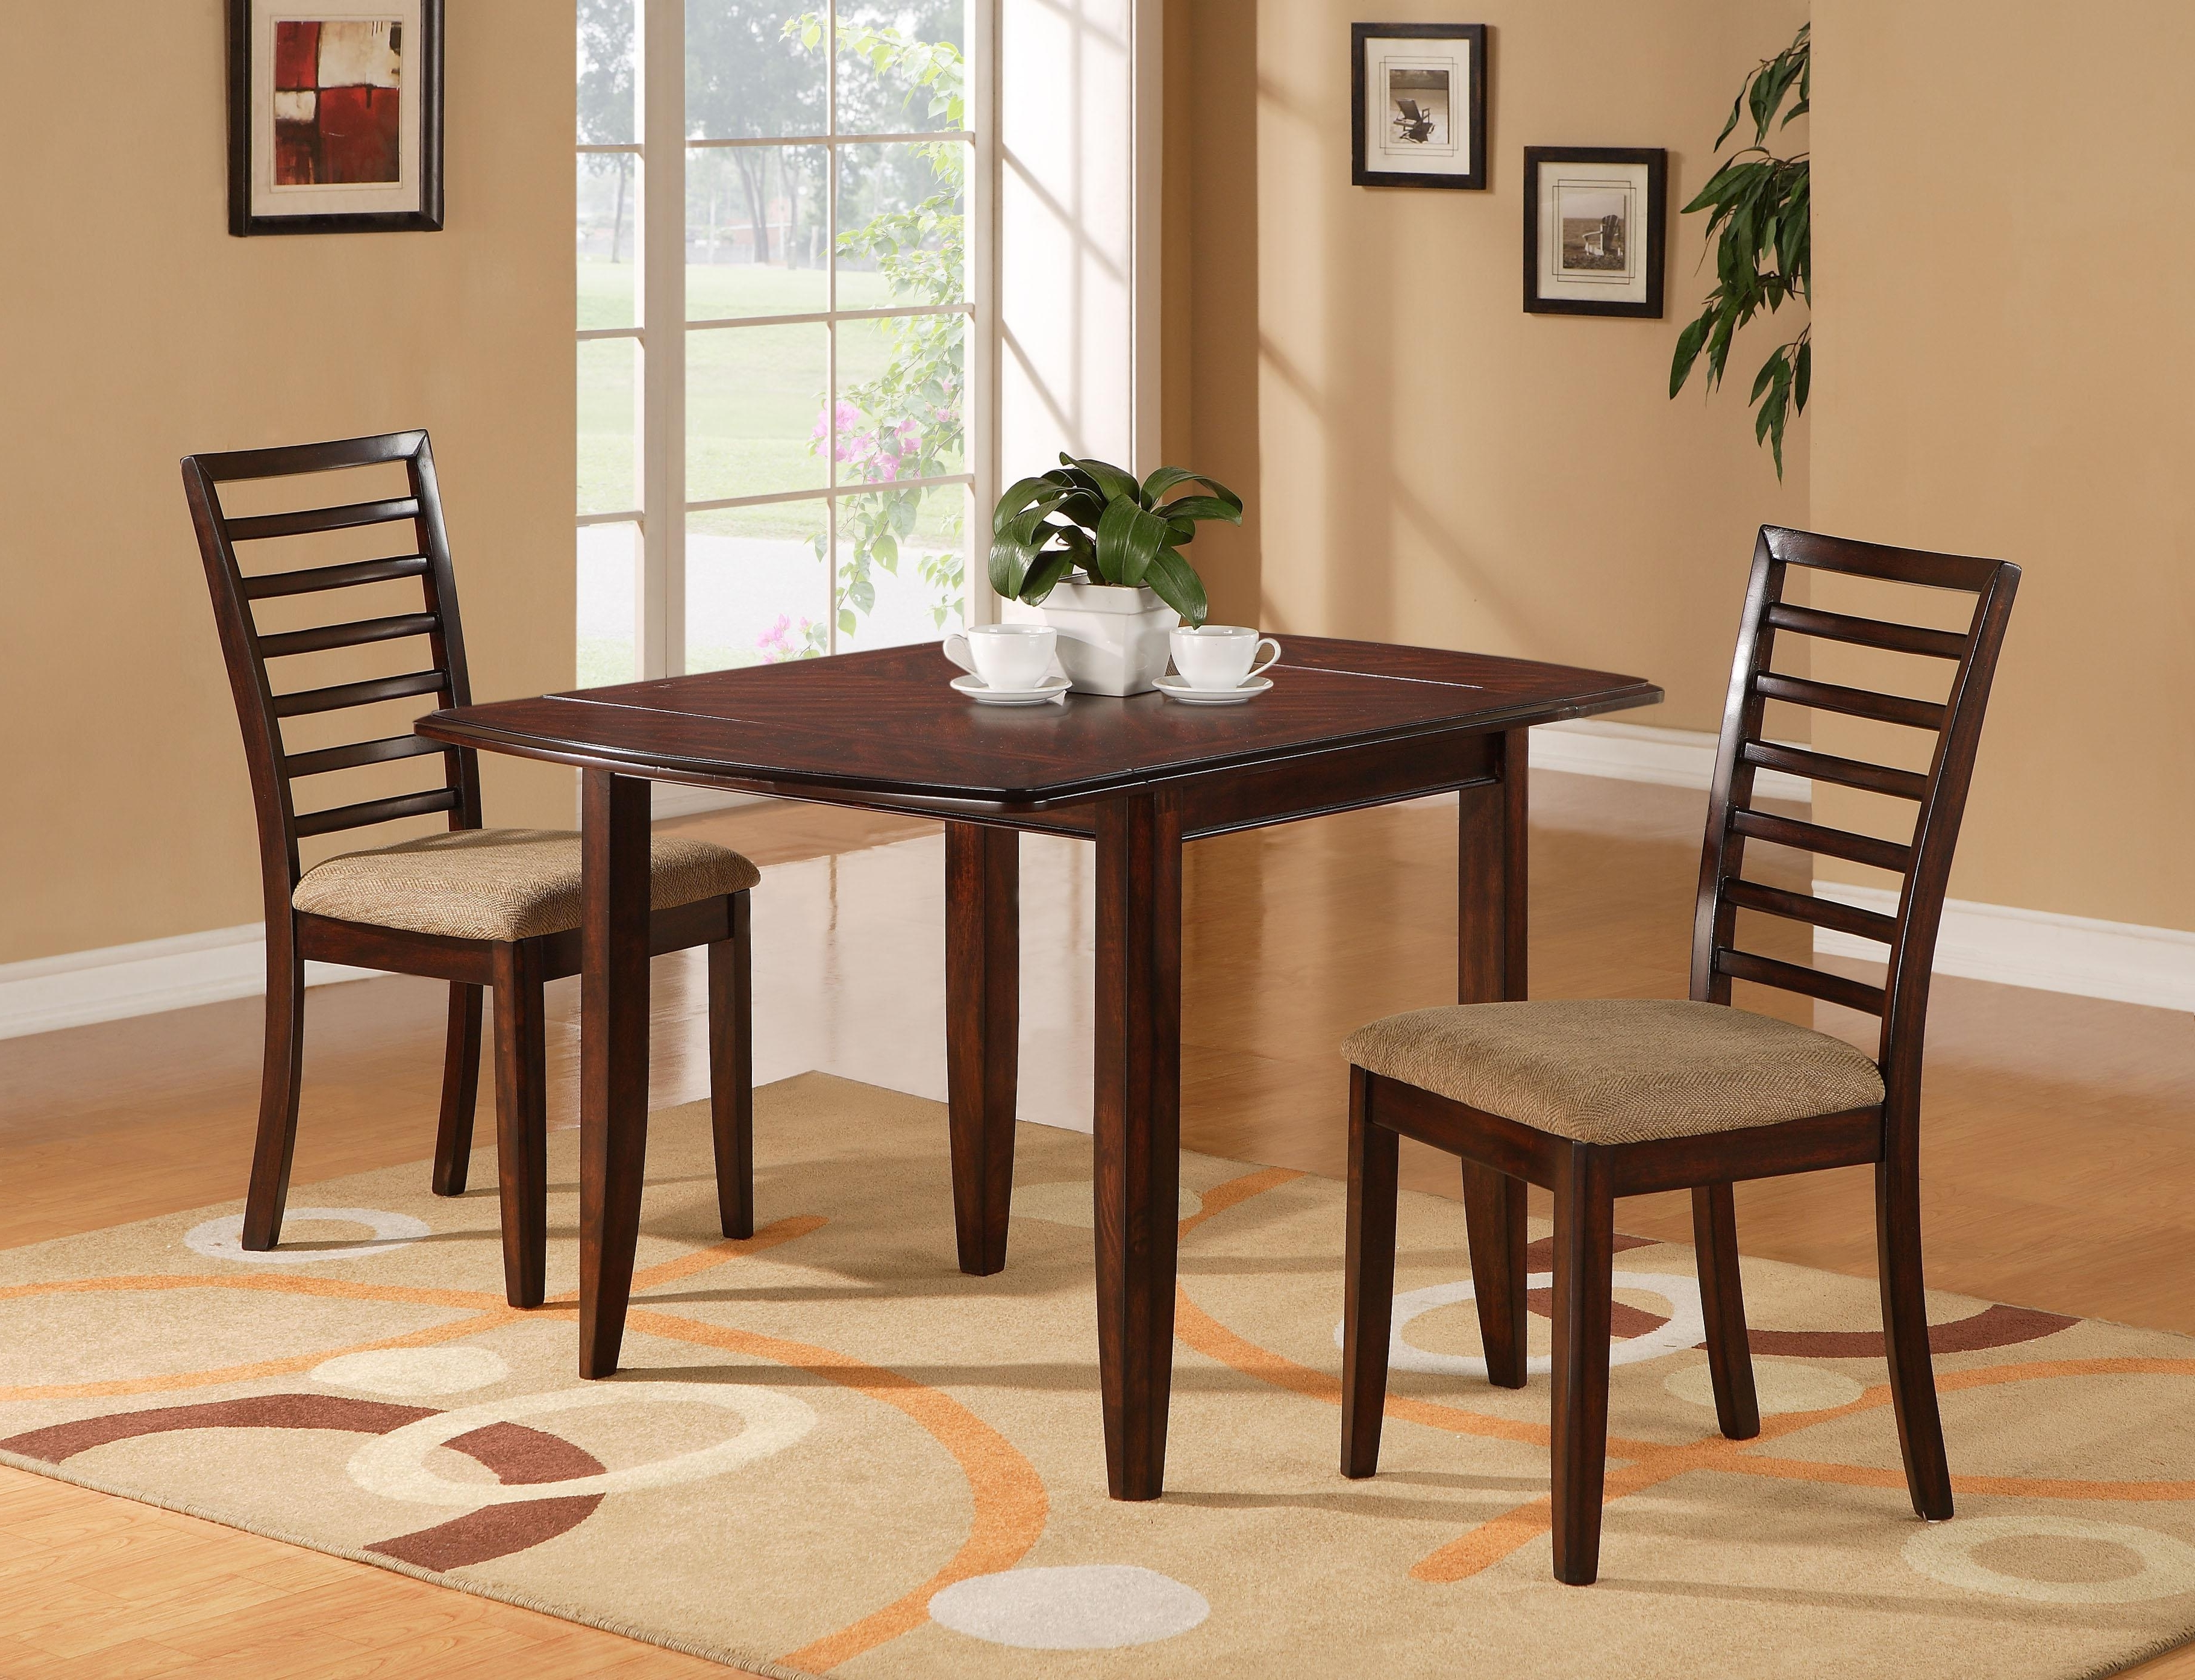 Spokane, Kennewick, Tri Cities, Wenatchee Within Cheap Dining Tables And Chairs (View 13 of 25)